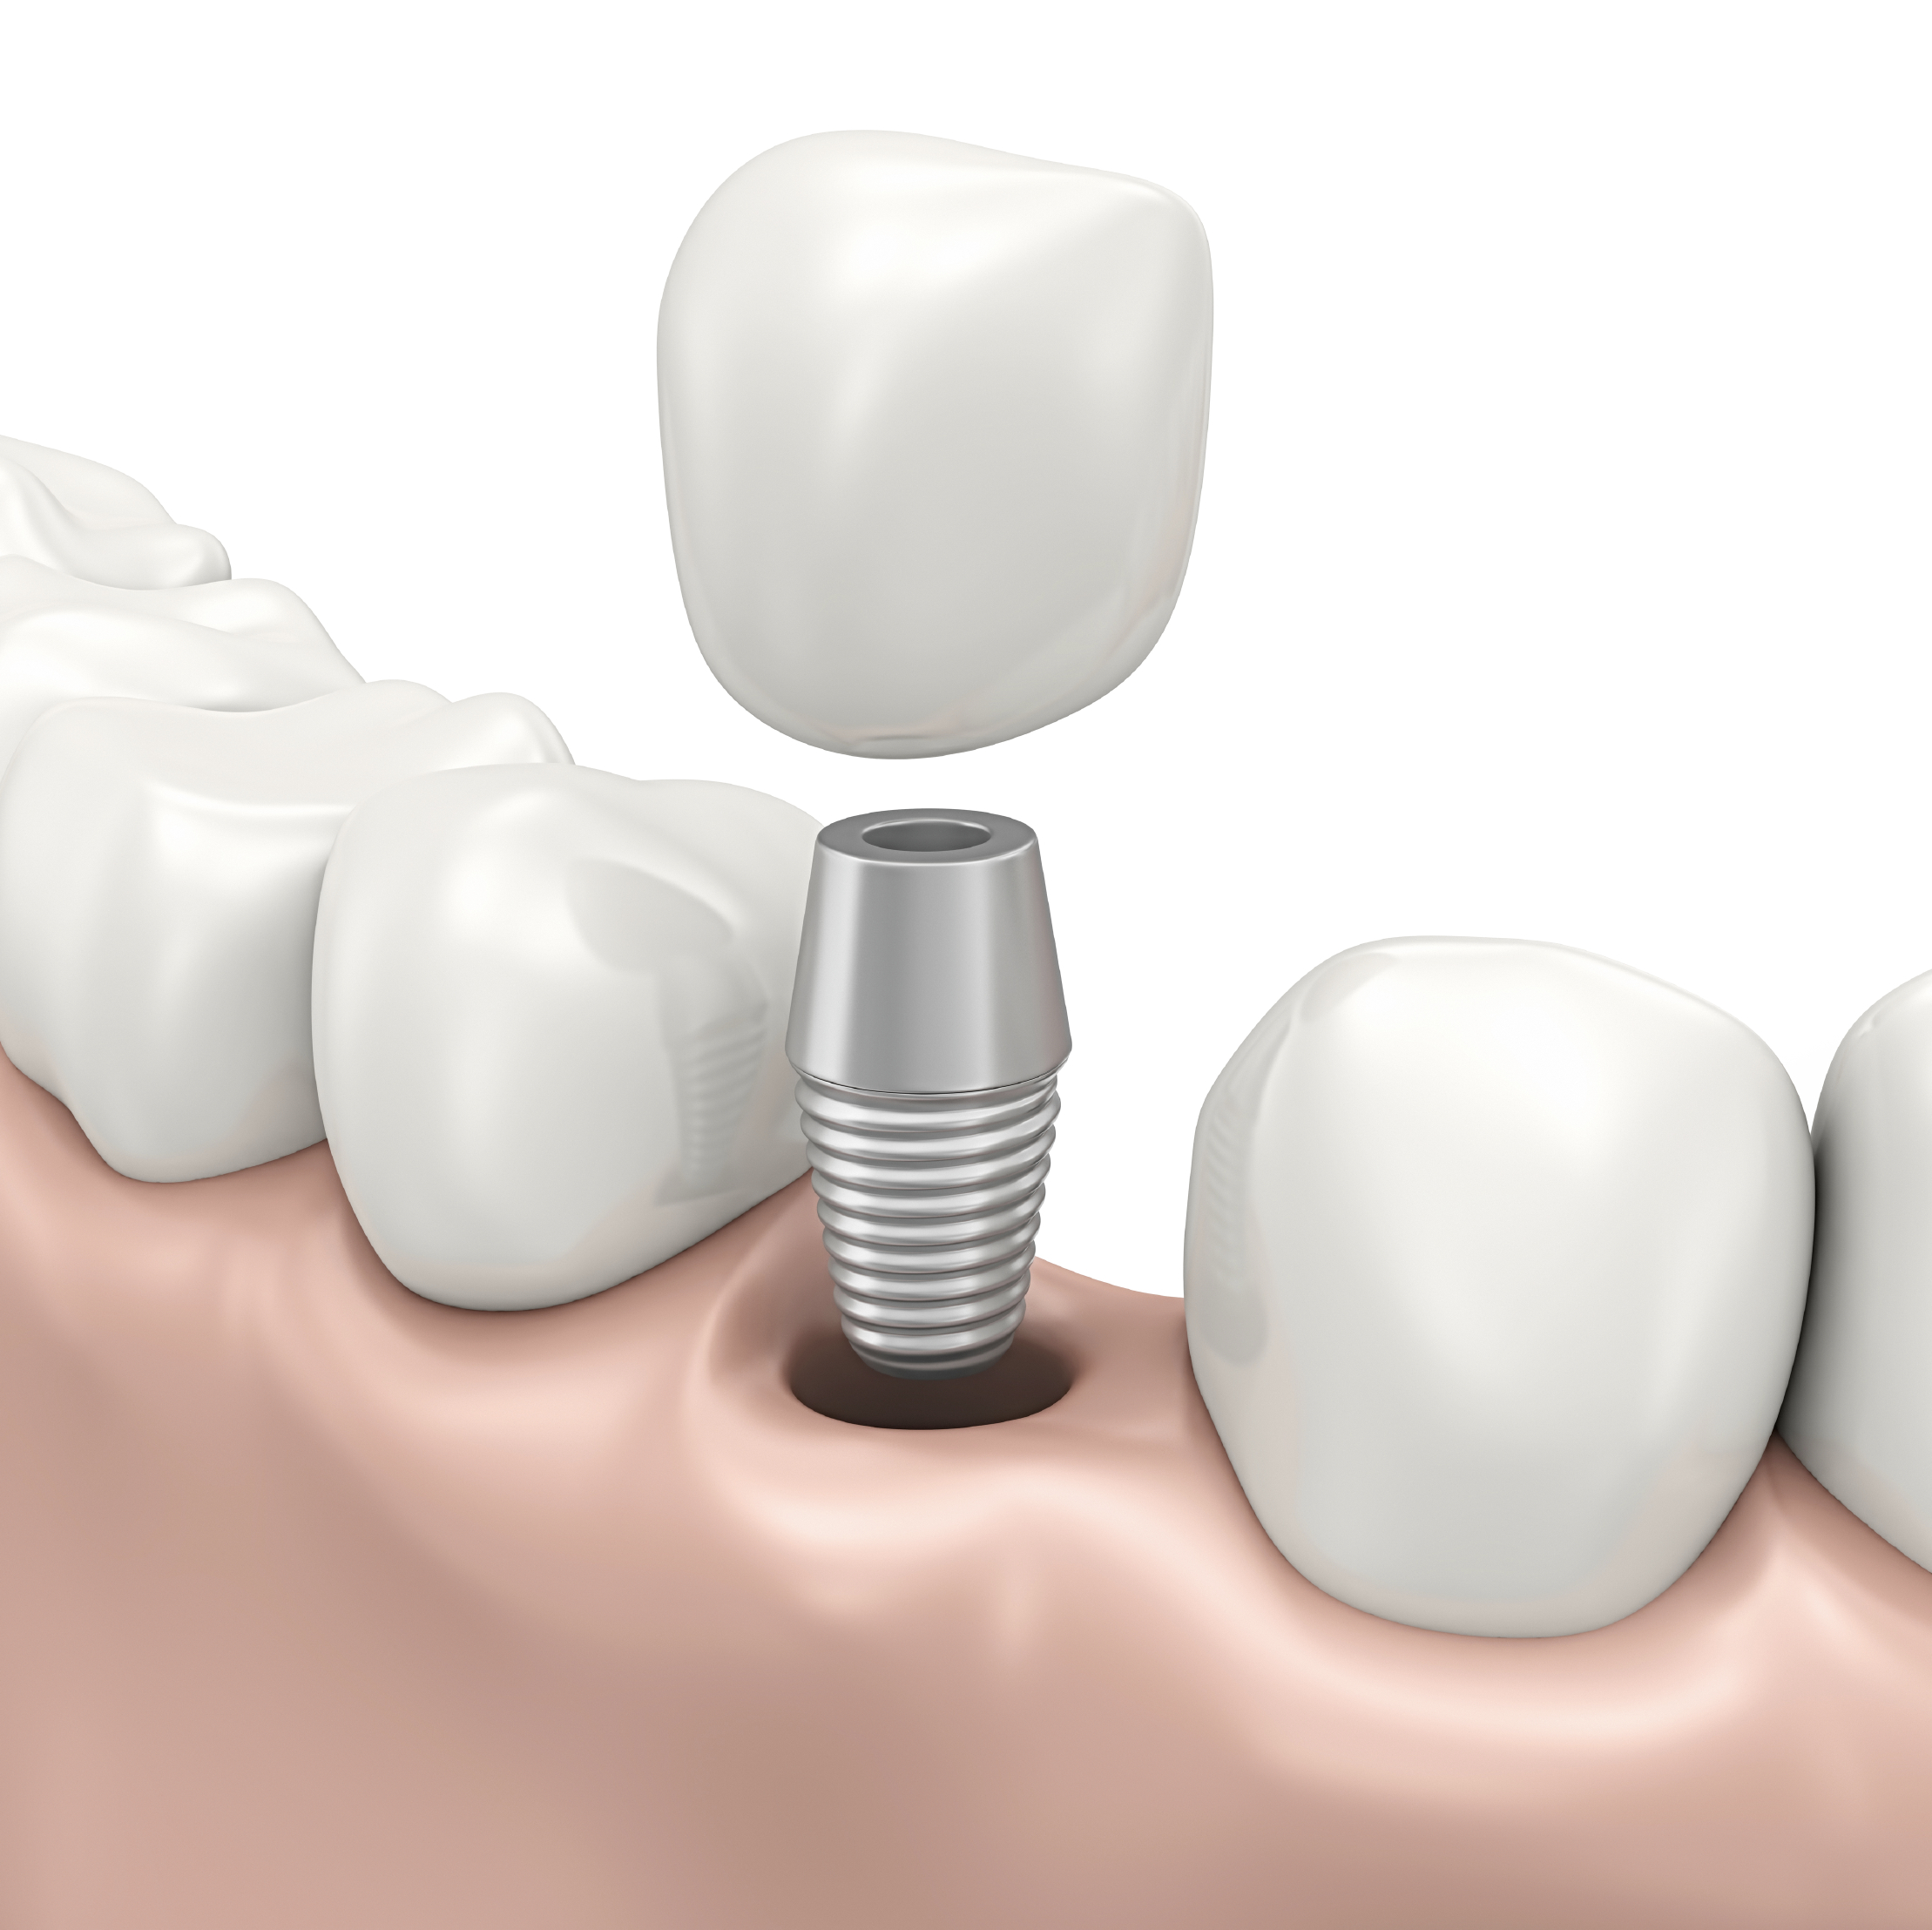 Dental Implant Restorations in Chico